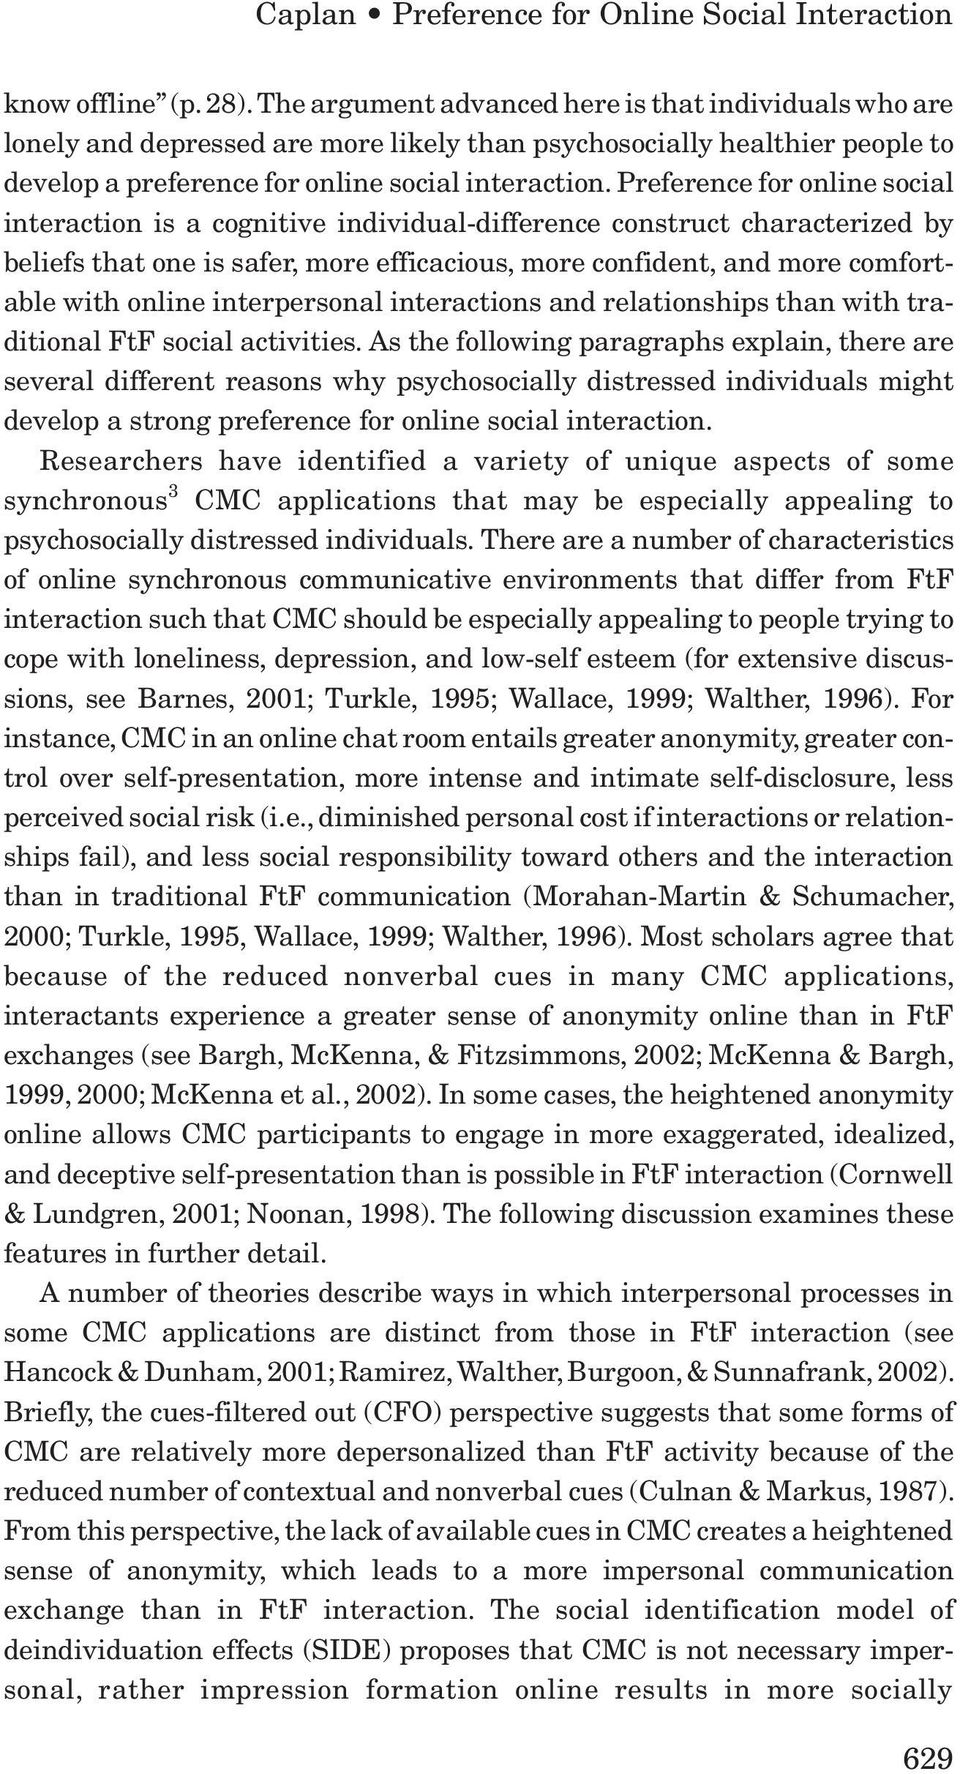 Preference for online social interaction is a cognitive individual-difference construct characterized by beliefs that one is safer, more efficacious, more confident, and more comfortable with online